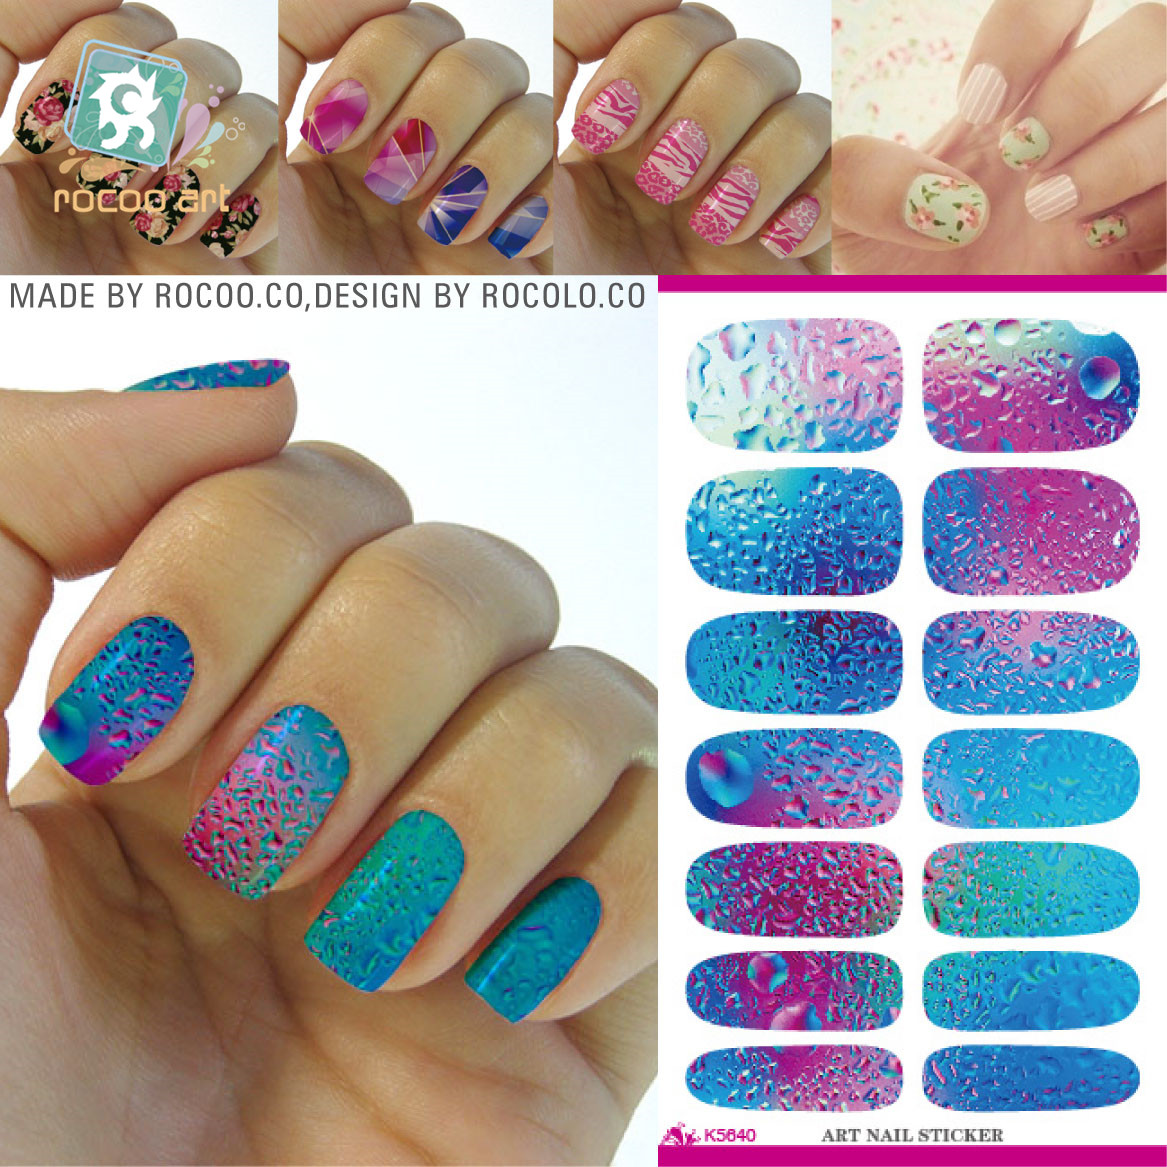 Nail Art Ideas nail art water decal : Rocooart K1 Nail Art Stickers Metallic Water Drops Space Water ...